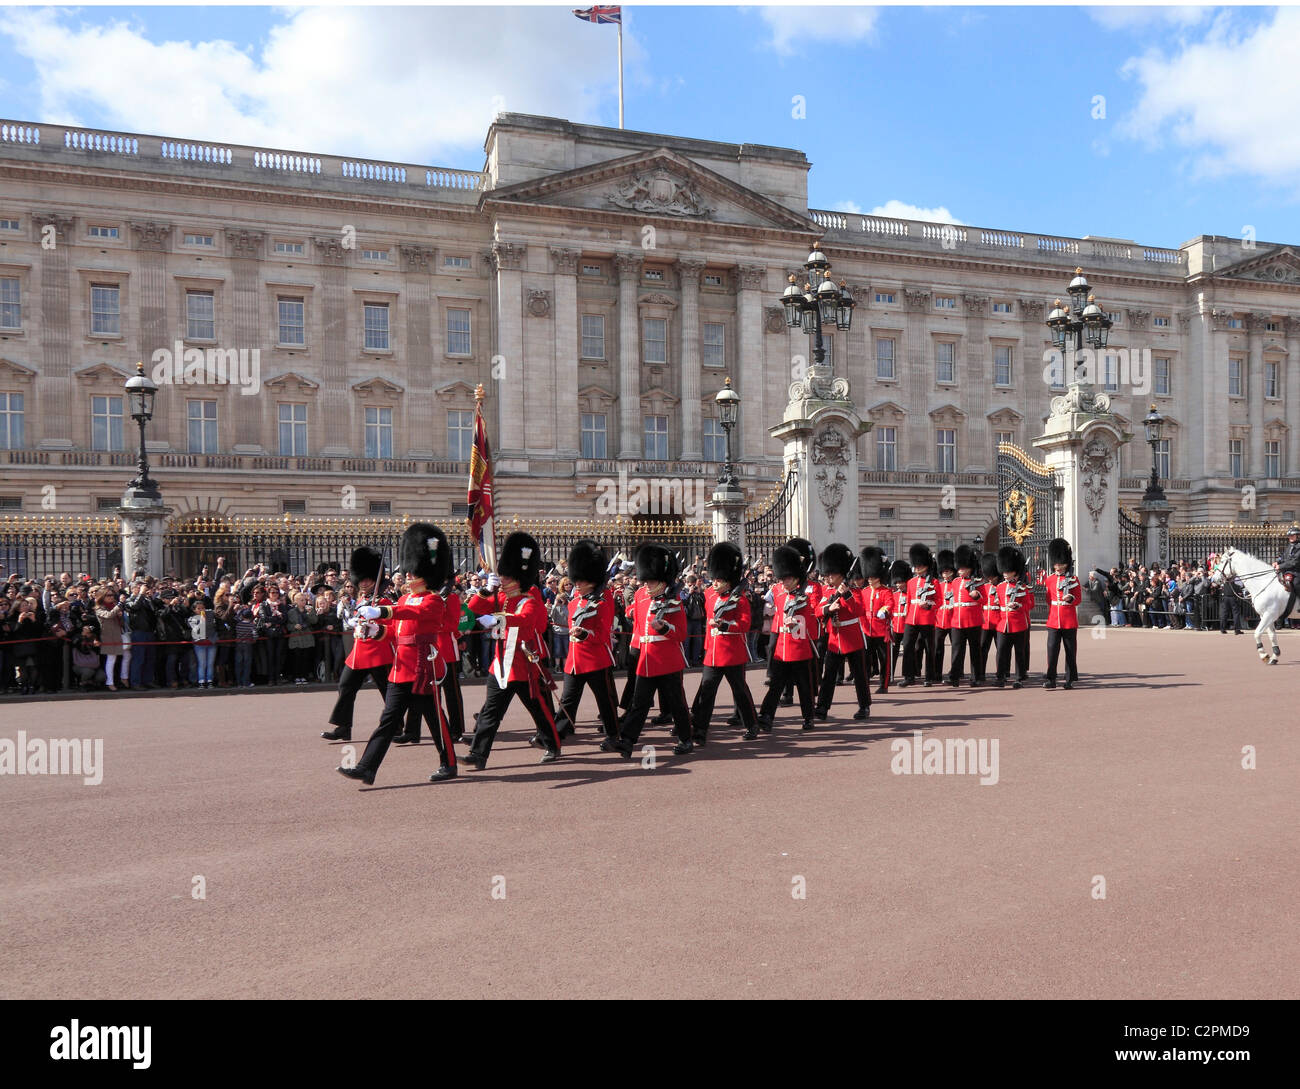 Relève de la garde au Palais de Buckingham à Londres Photo Stock